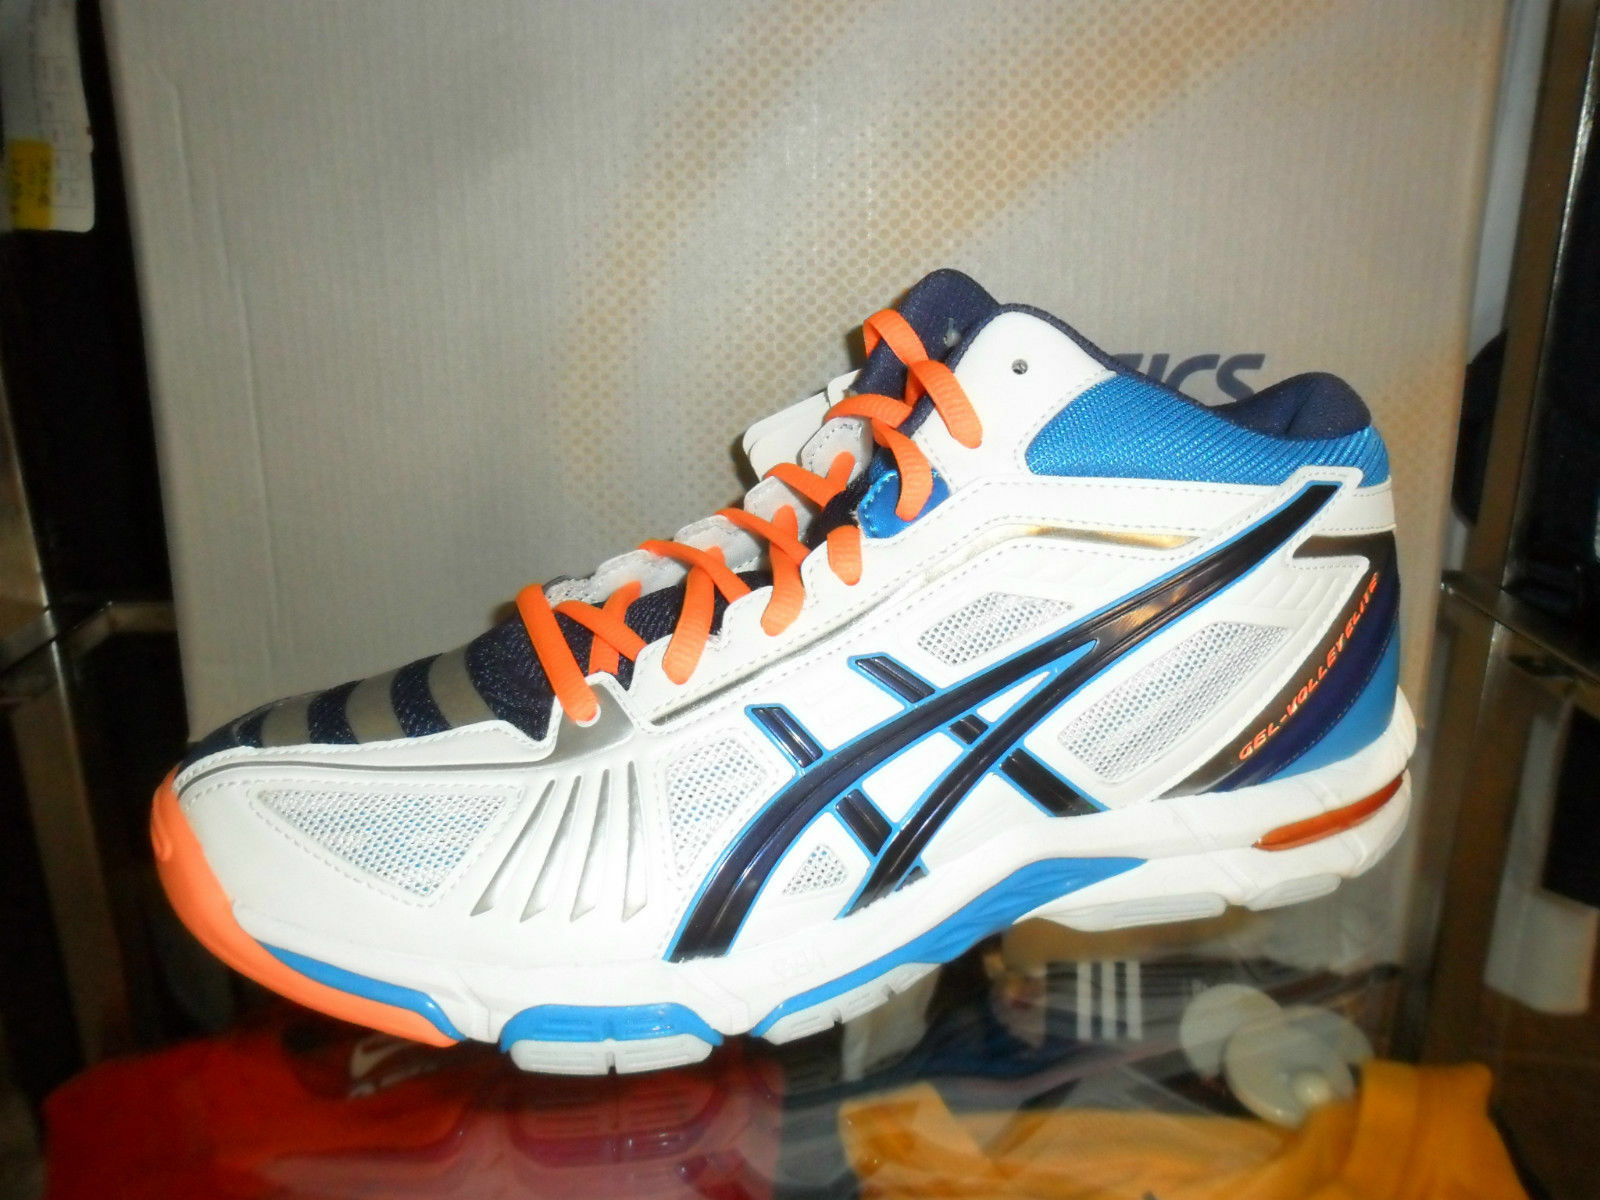 FW17 ASICS FIPAV SHOES GEL VOLLEYBALL ELITE 2 MT MAN VOLLEYBALL MAN B300N 0150